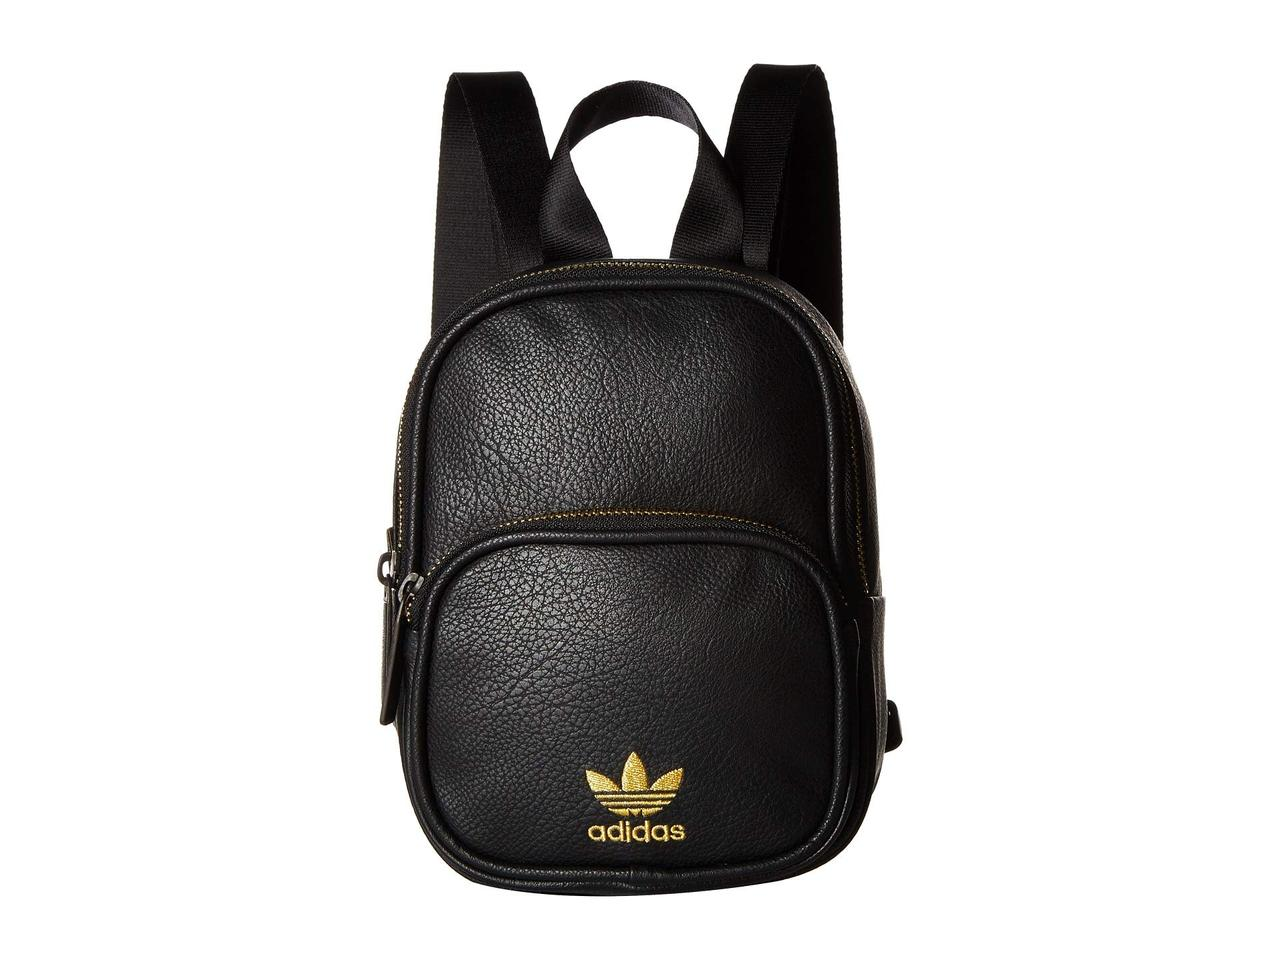 9f64c2010e Adidas Black Gold Backpack | The Shred Centre